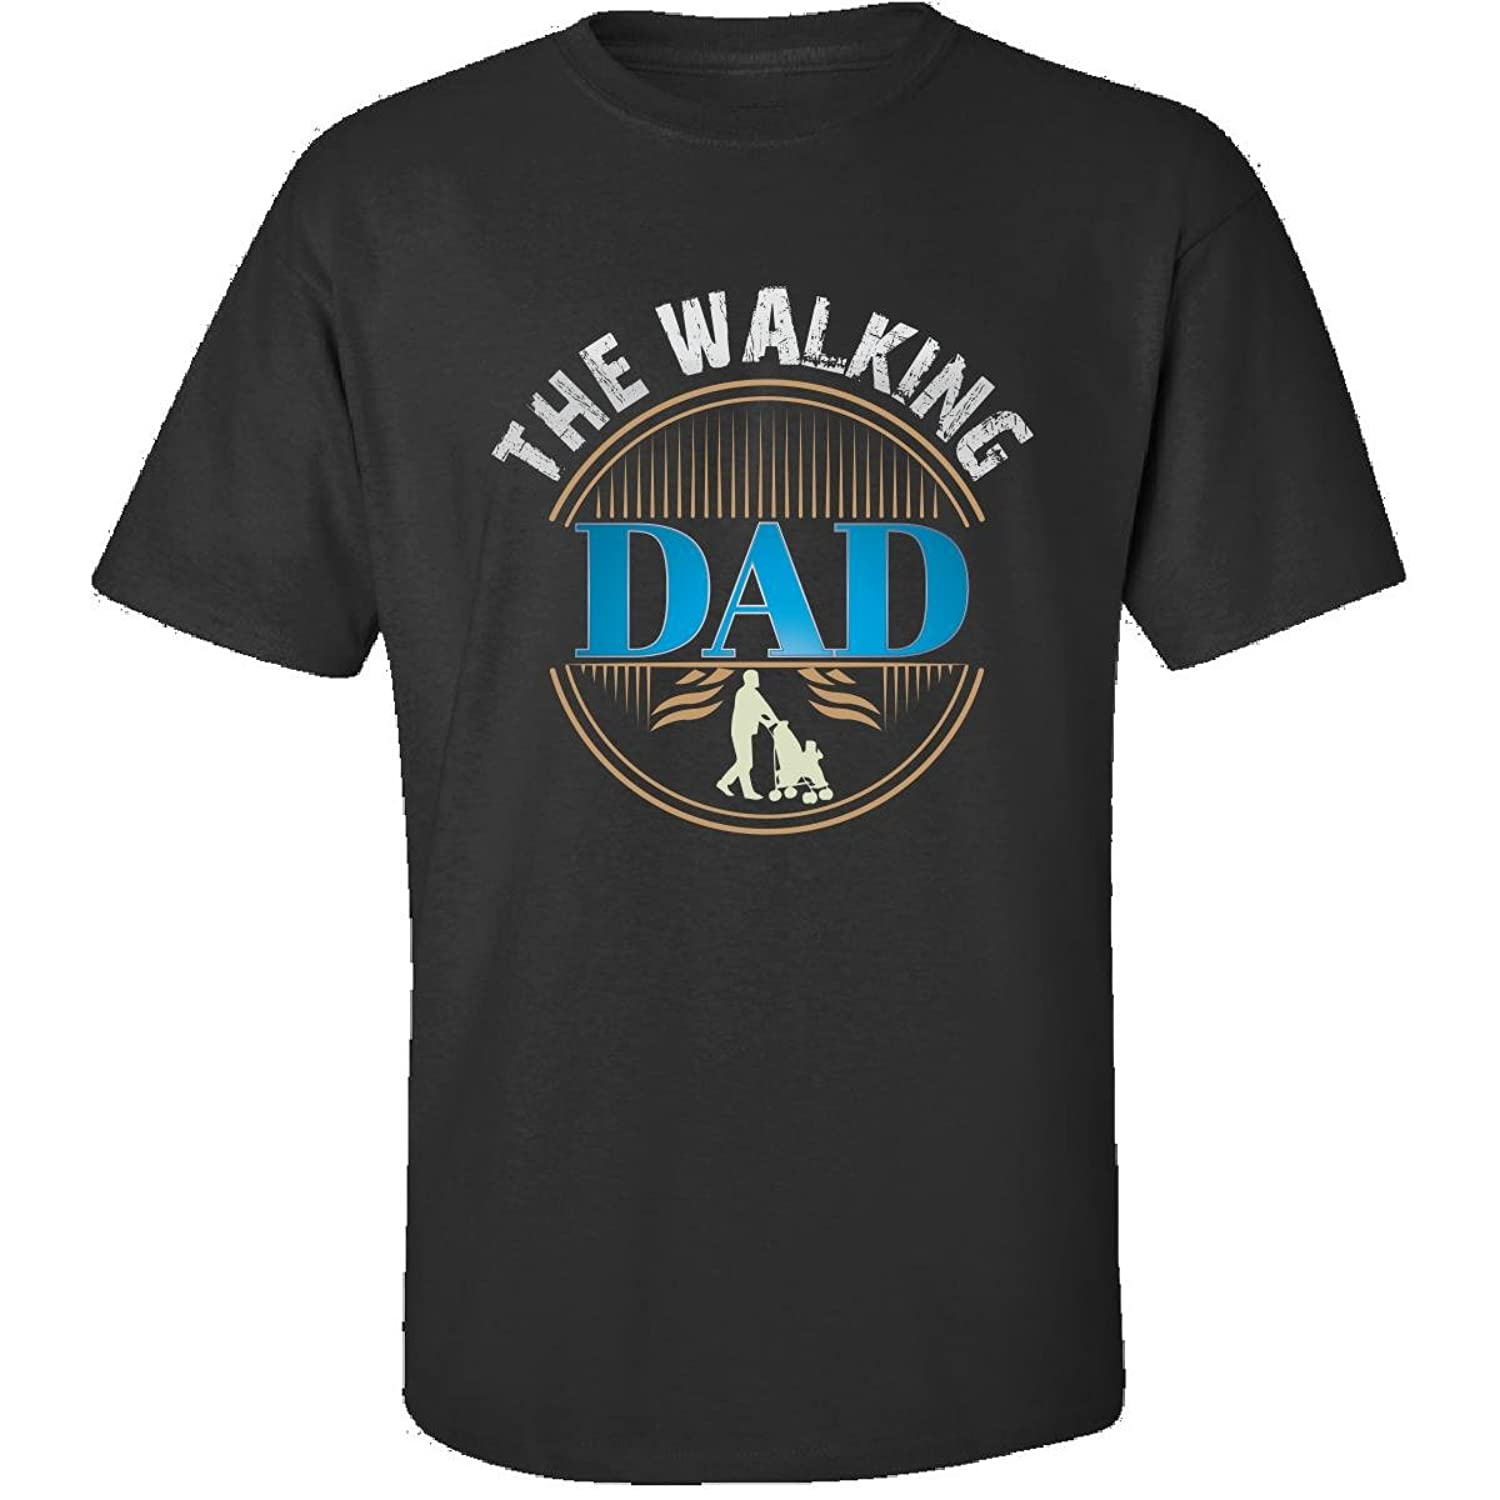 The Walking Dad - Adult Shirt